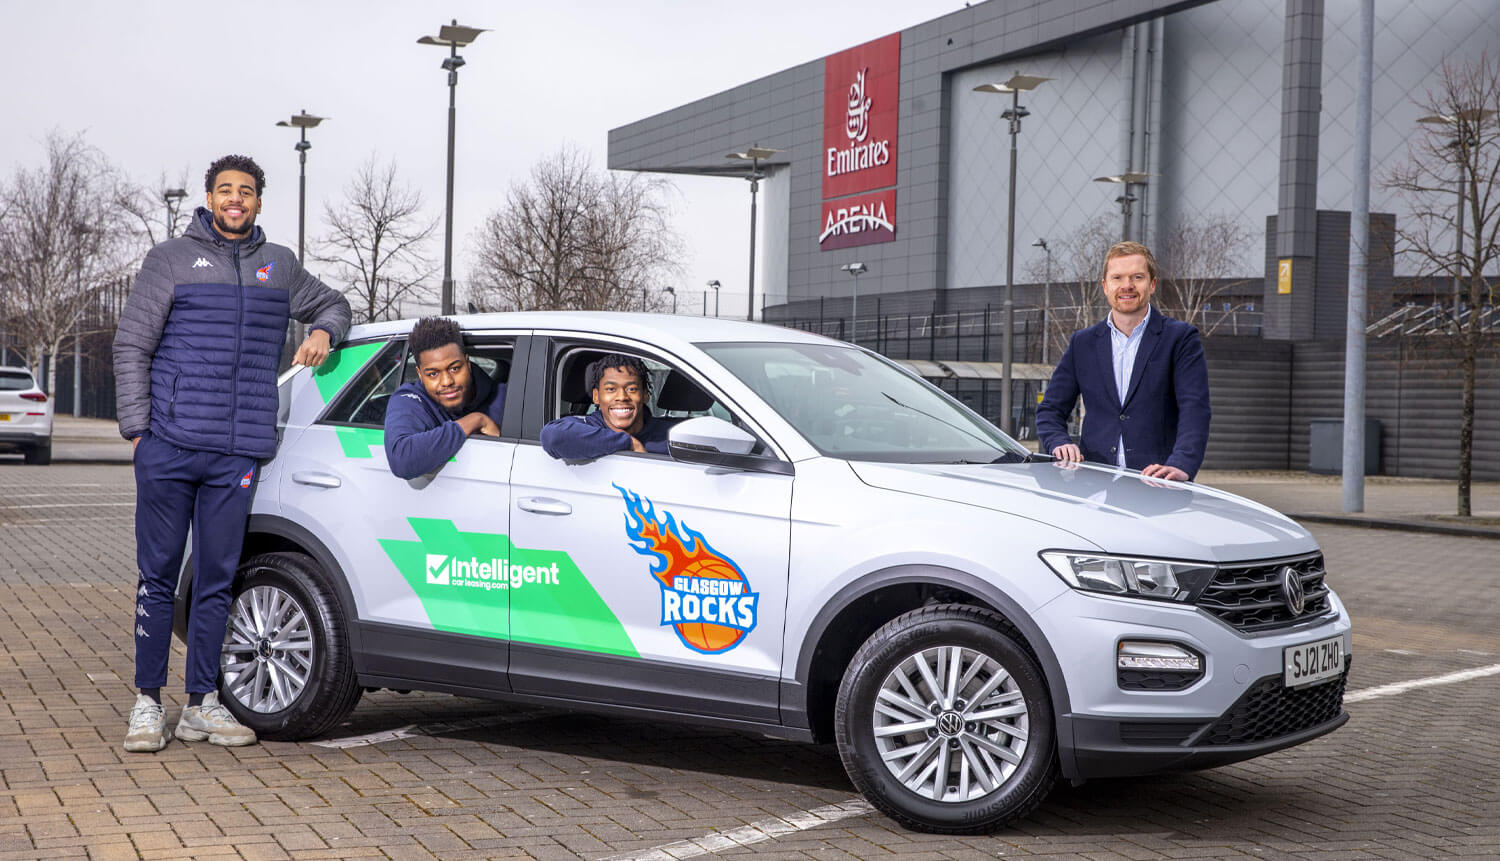 ICL Provides Free Car To Glasgow Rock's